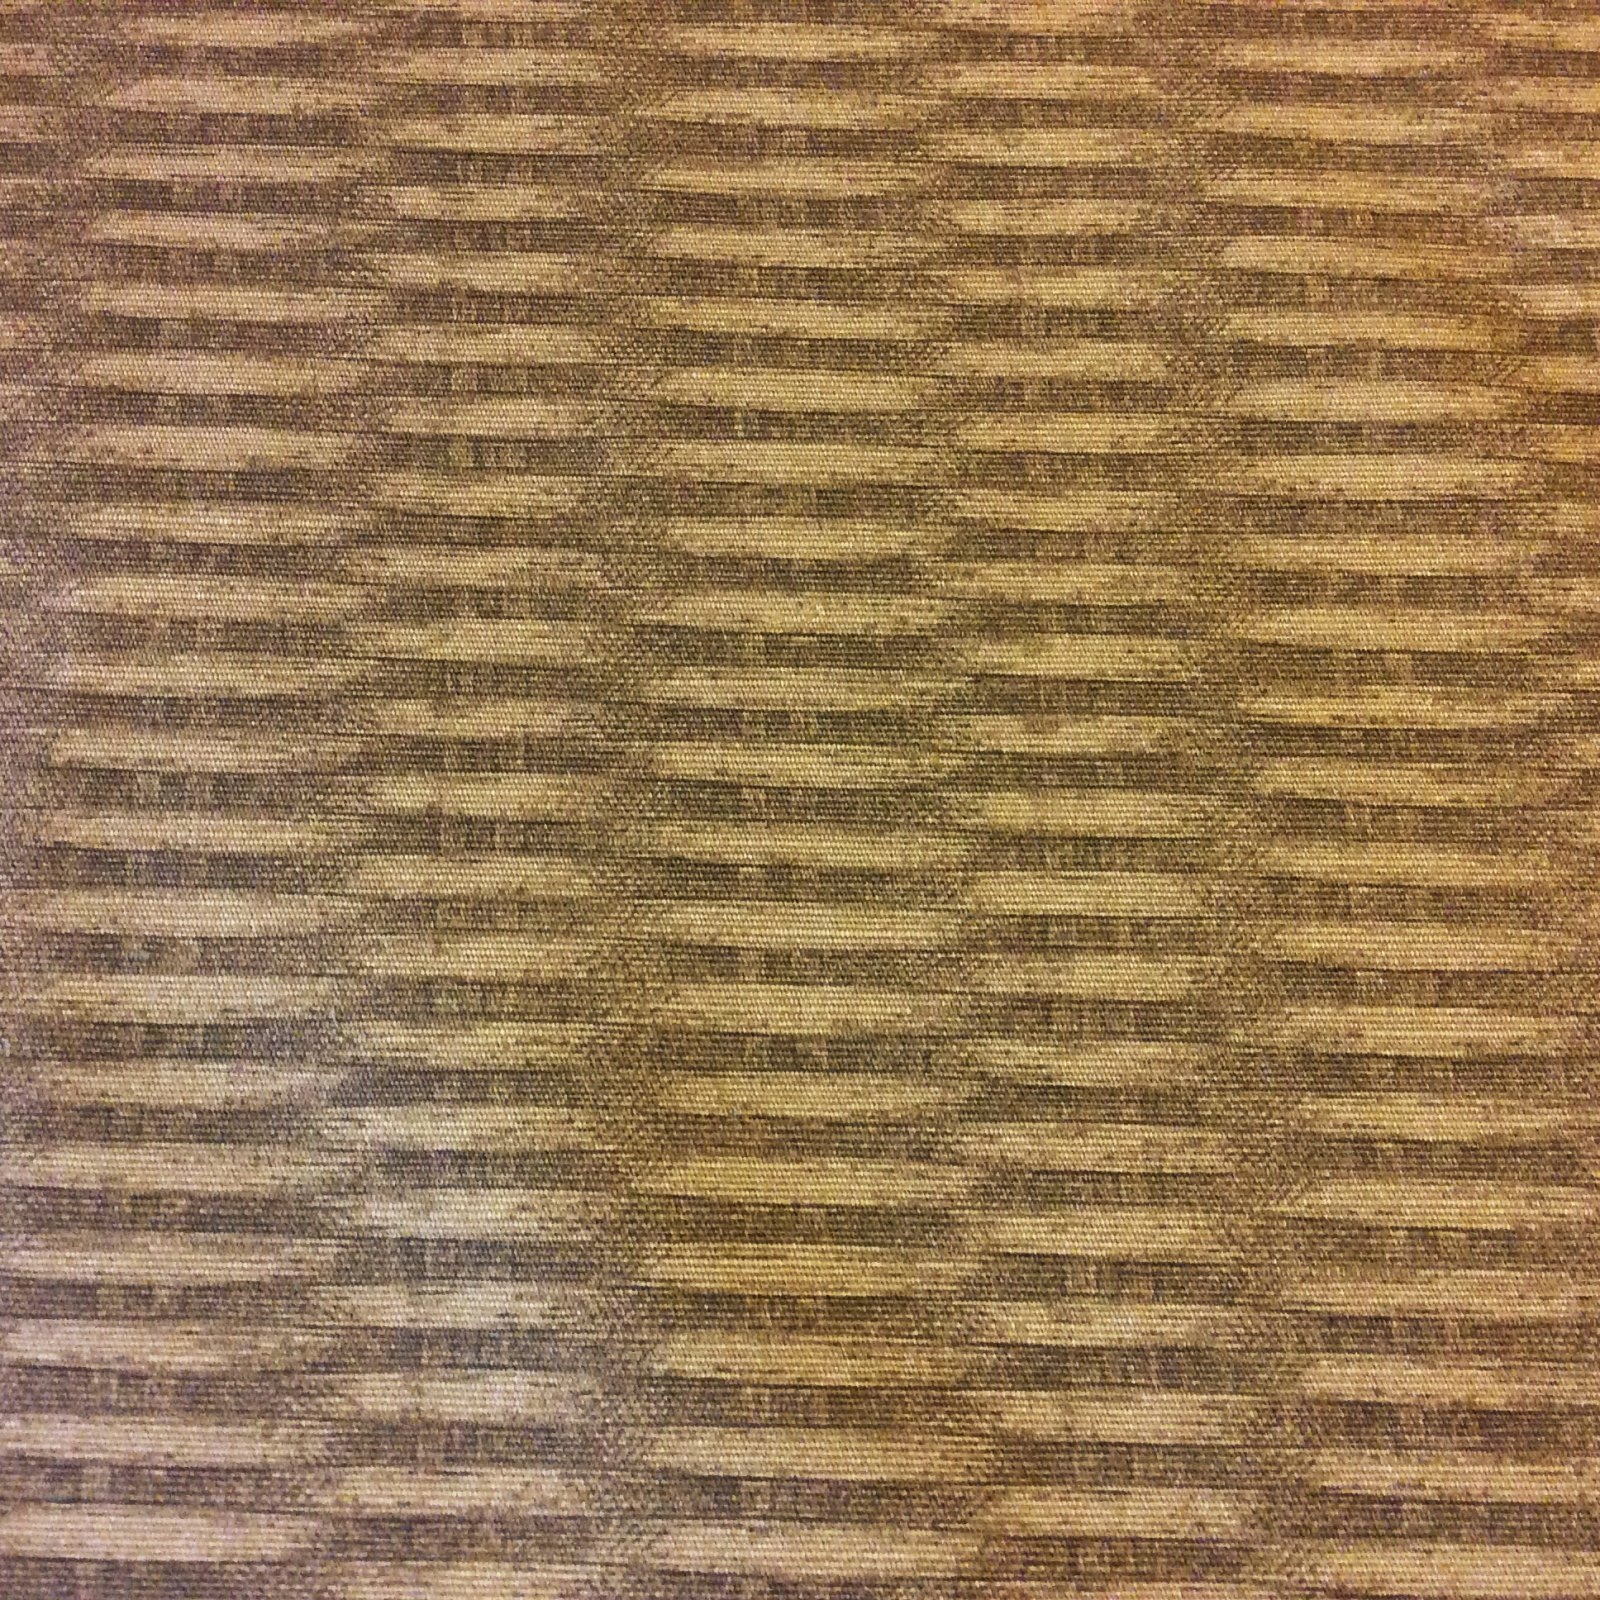 Ralph lauren home derby wicker reed printed heavy weight for Wicker reed